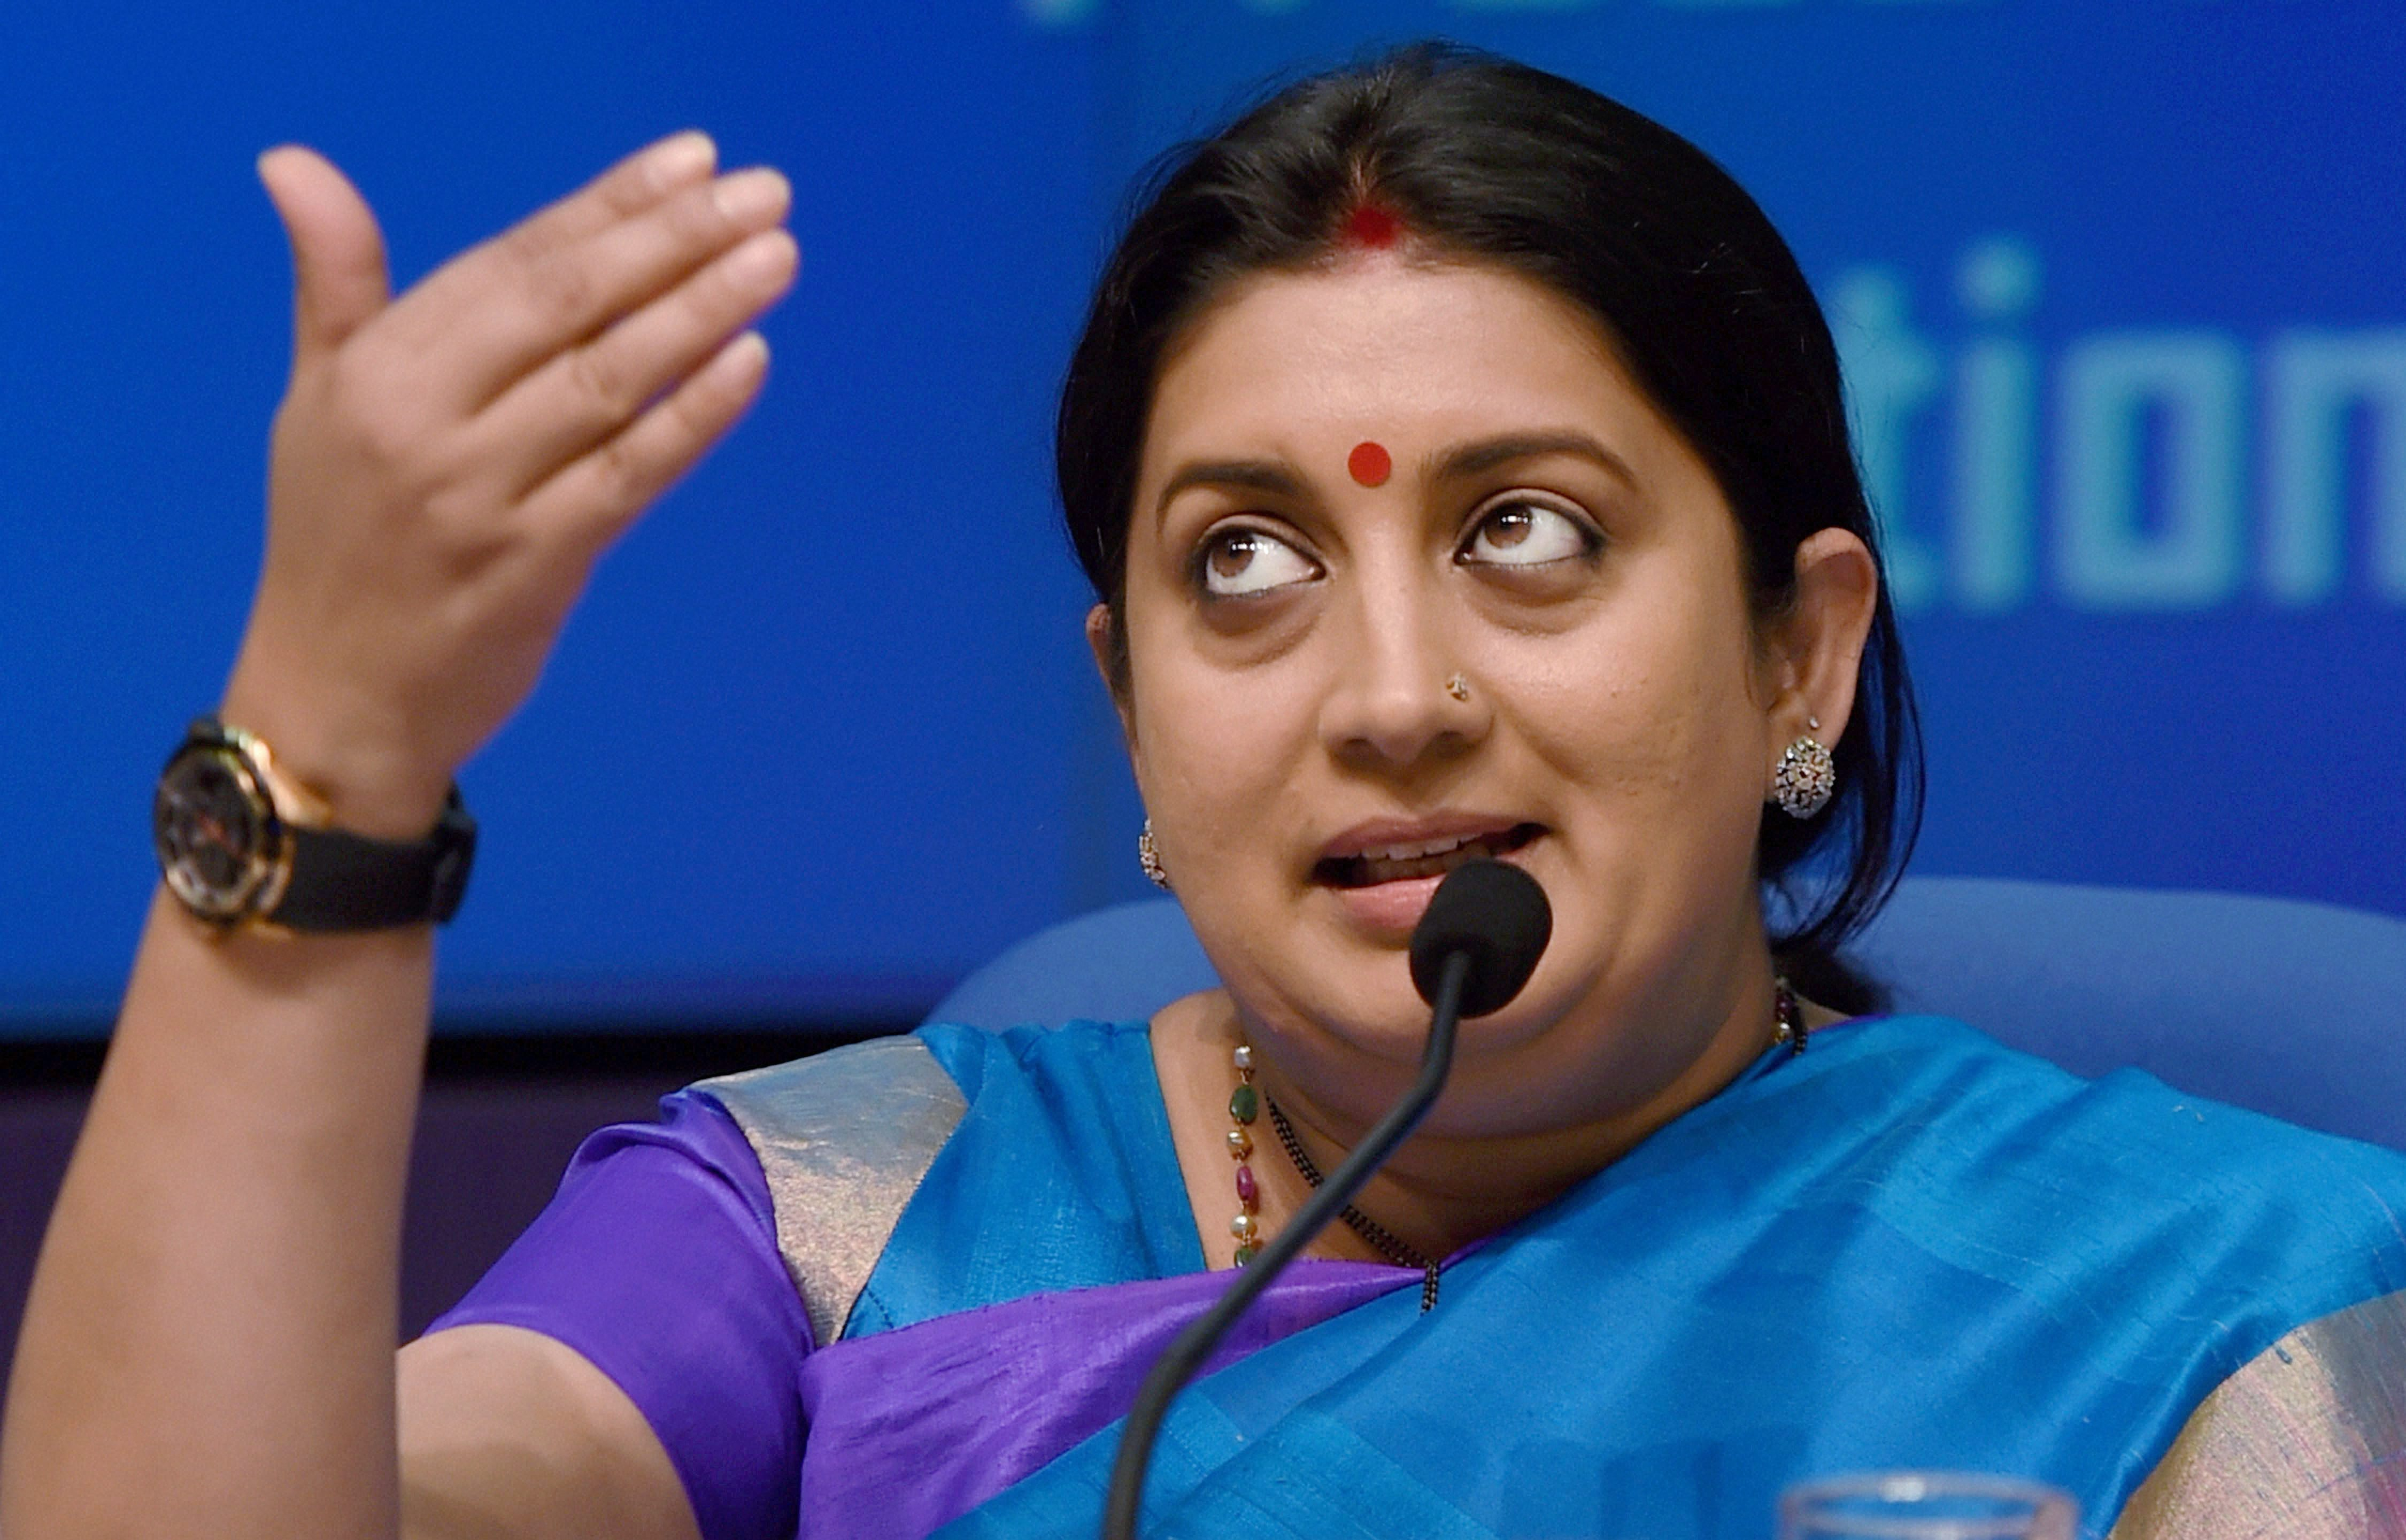 '42 Years Too Late,' Says Smriti Irani on Rahul Gandhi's Hitler Jibe at PM Modi